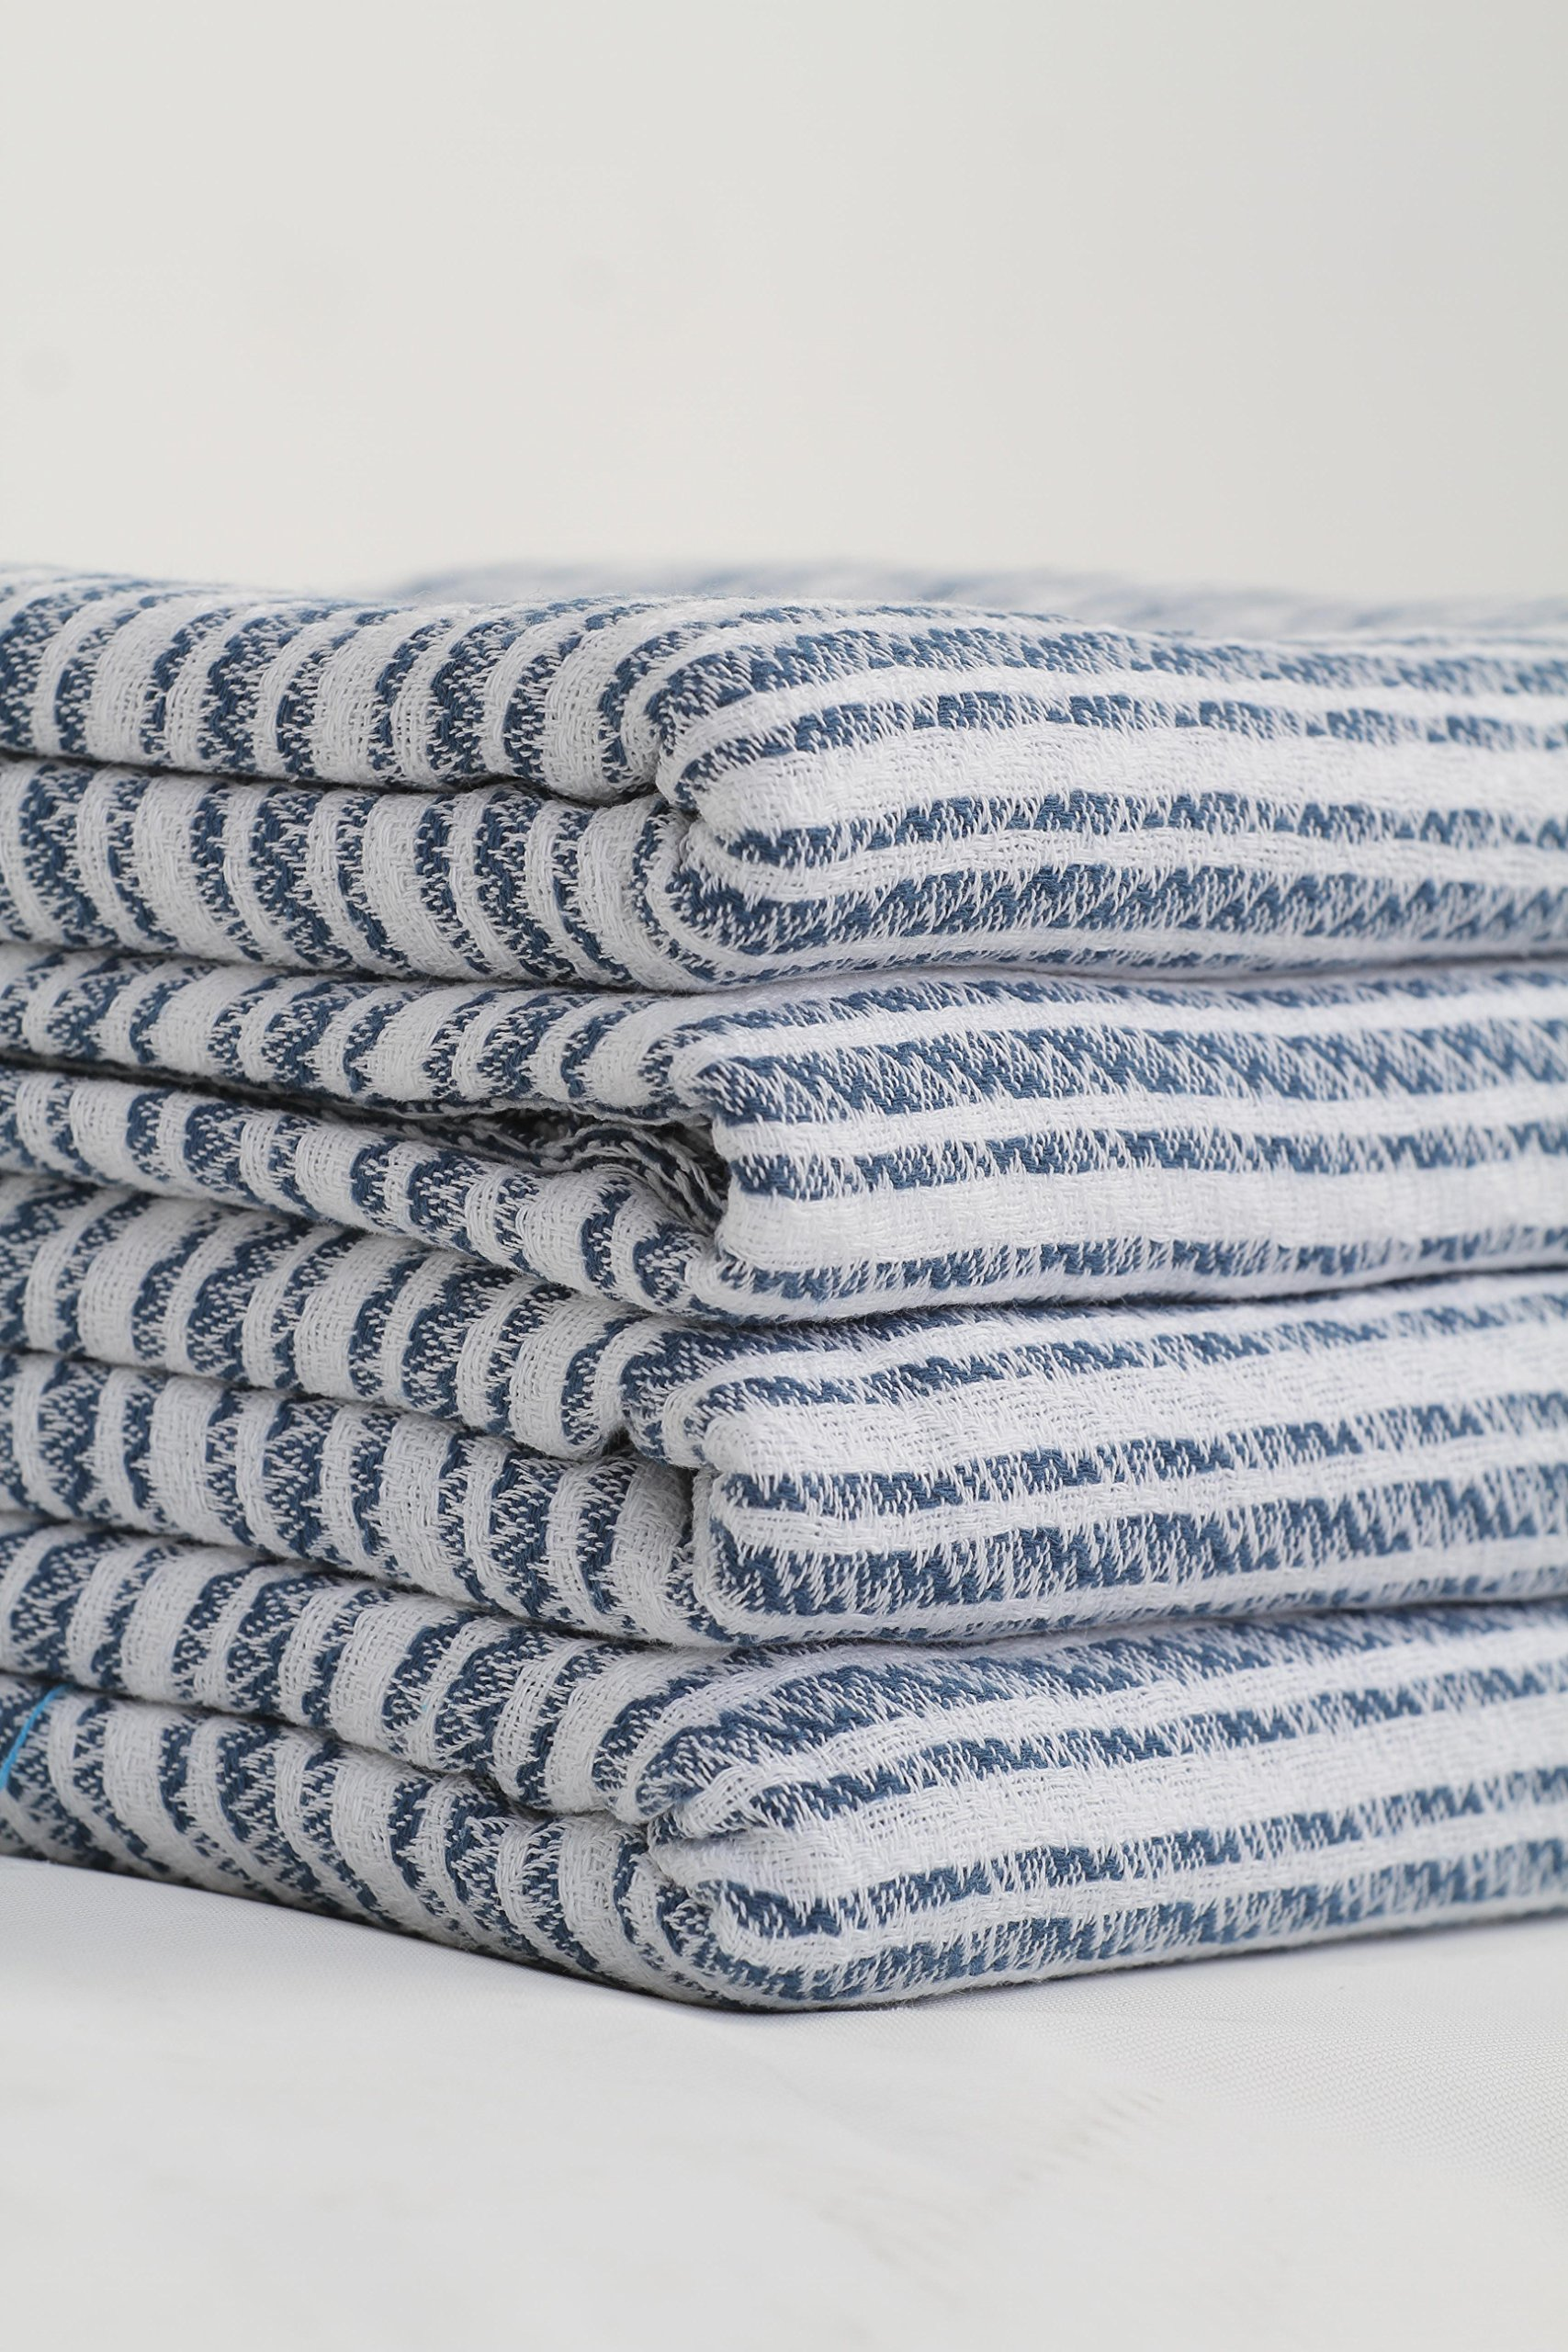 Sualla 100% Cotton - Istanbul Turkish Towel - Bath Fouta Beach Blanket - Handloom Peshtemal - 34X69 Inches, Dark Blue (Set of 4) - Lightweight and compact: Less storage room than the space of a traditional plush towel in the linen closet or bag. Pack our pestemal for bathroom, pool, spa, sauna, hammam, massage table, gym, sports, fitness, yoga, travel, camping, picnic Super Versatile: Use as sarong, shawl, pareo, scarf, wrap. Decorative purposes at home or kitchen as table cloth, couch, sofa, chair throw or bed cover. Choose a color or pattern that matches your living room decor Absorbent and quick dry: Our flat woven pestemal is fast drying by air or washer dryer. Put the towel set in a basket for guests to use at your beach house for the shower instead of heavy towels. Make sets of 4, 6 with hand towels or washcloths - bathroom-linens, bathroom, bath-towels - 918 LCEDvtL -